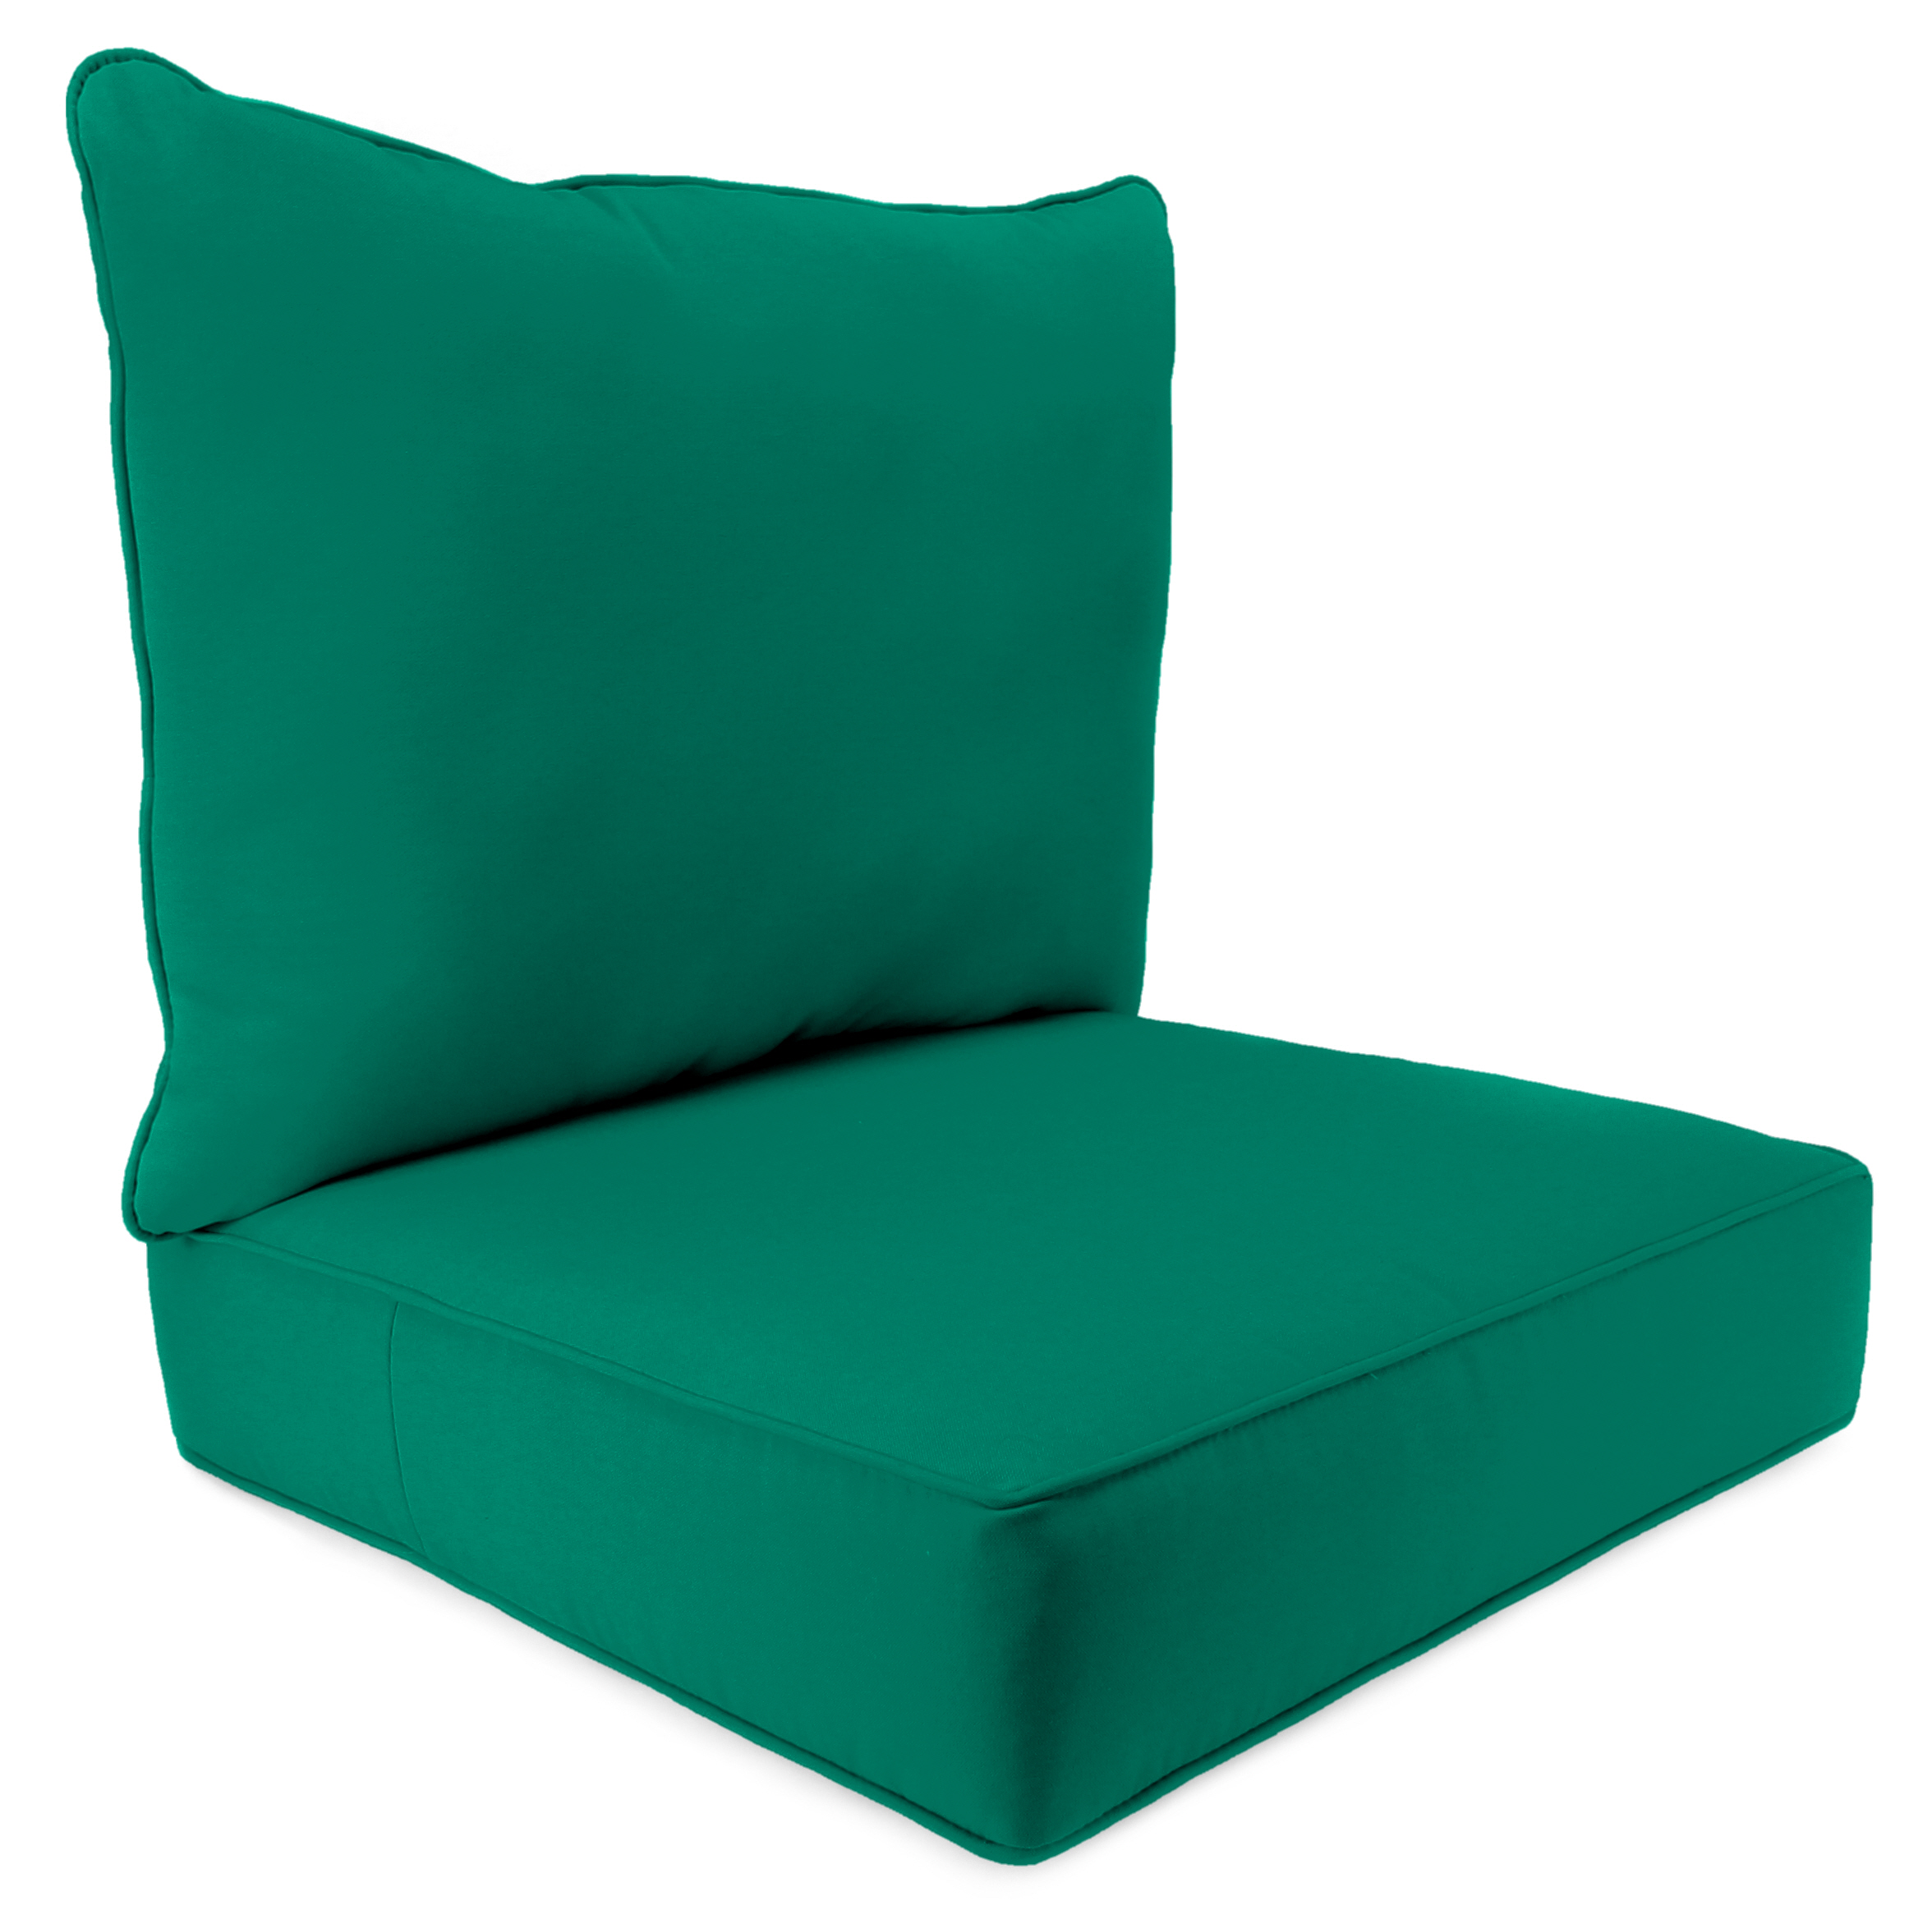 teal chair cushions covers of yorkshire jordan manufacturing co inc 2 piece patio deep seat